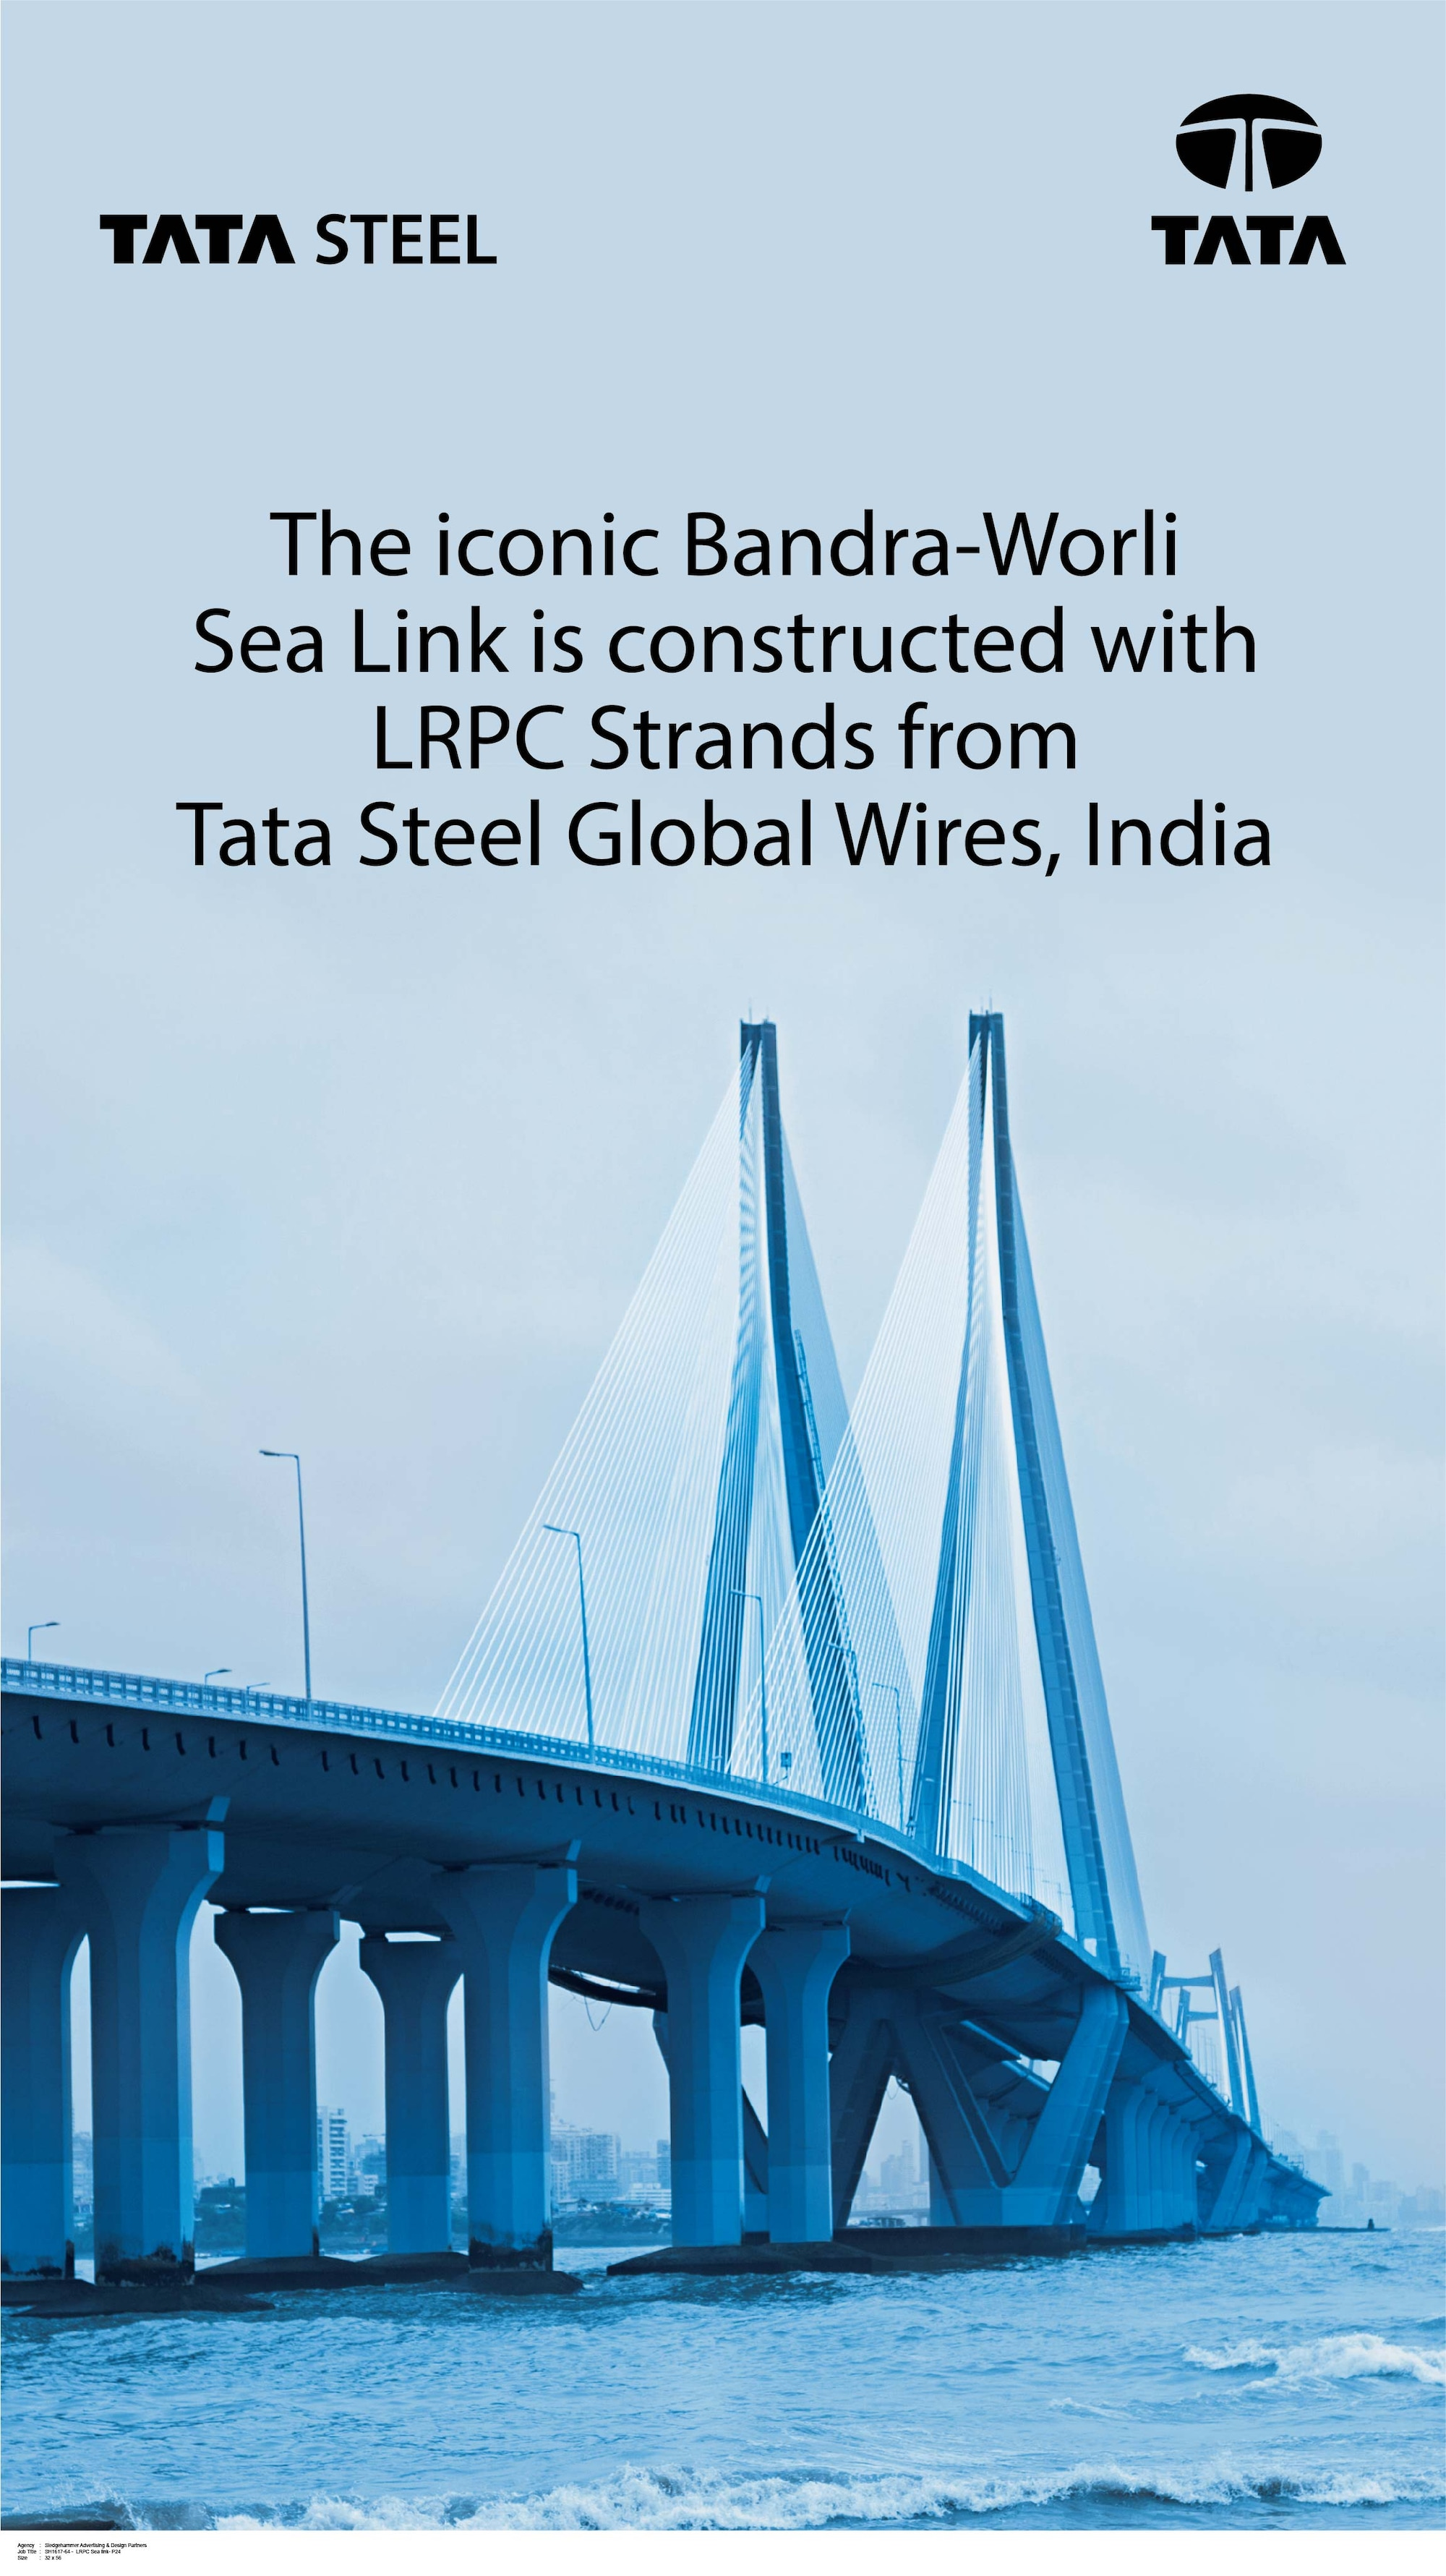 Building India's tomorrow with Tata Steel's LRPC Strands